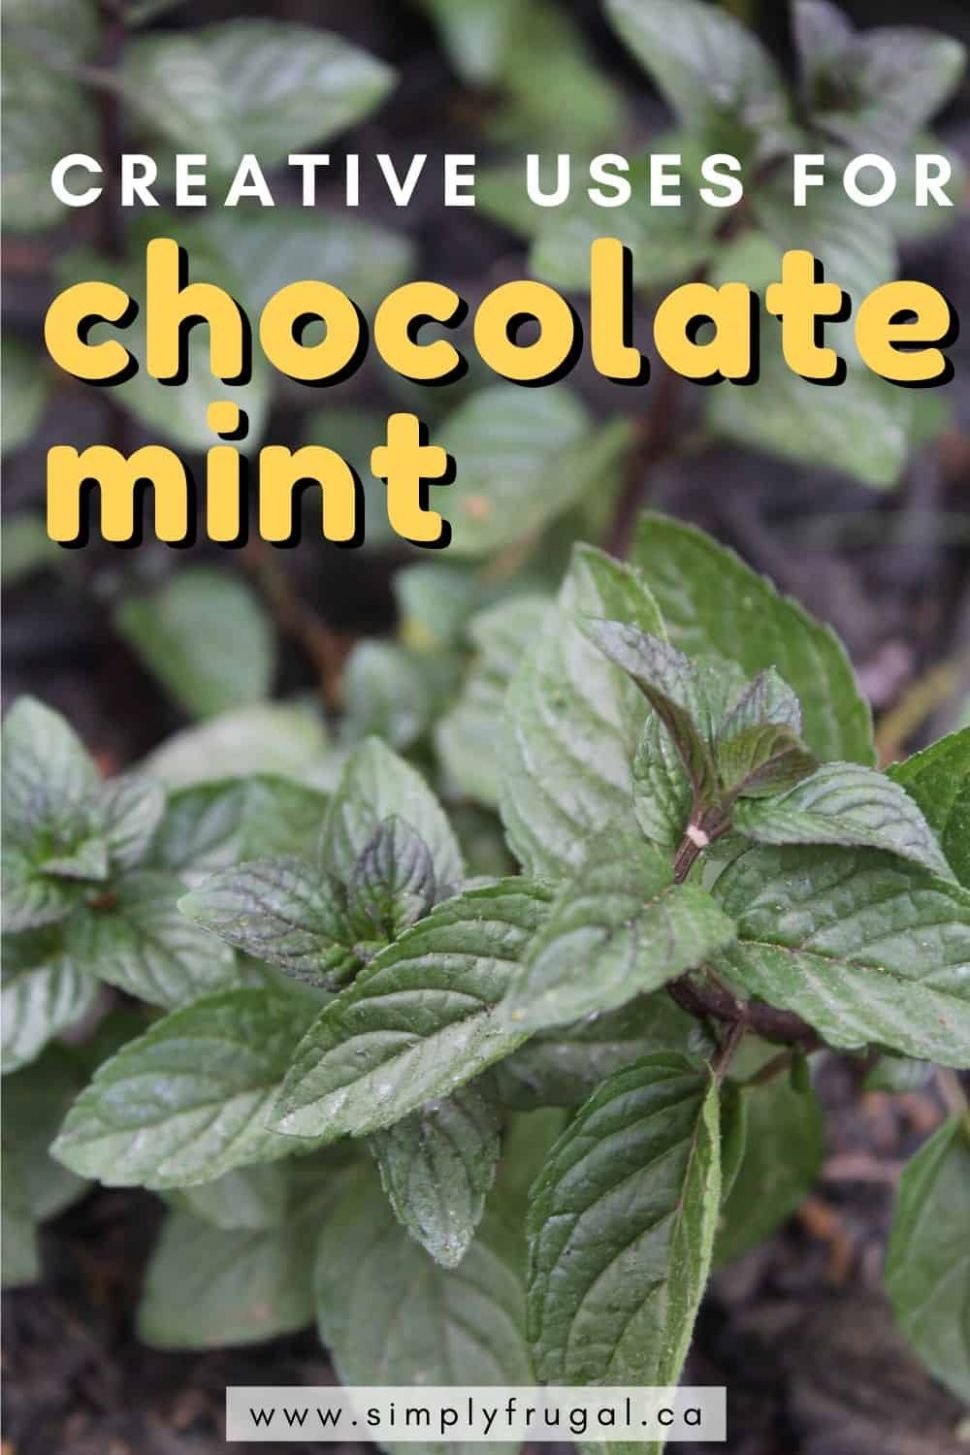 12 Creative Uses for Chocolate Mint | Simply Frugal